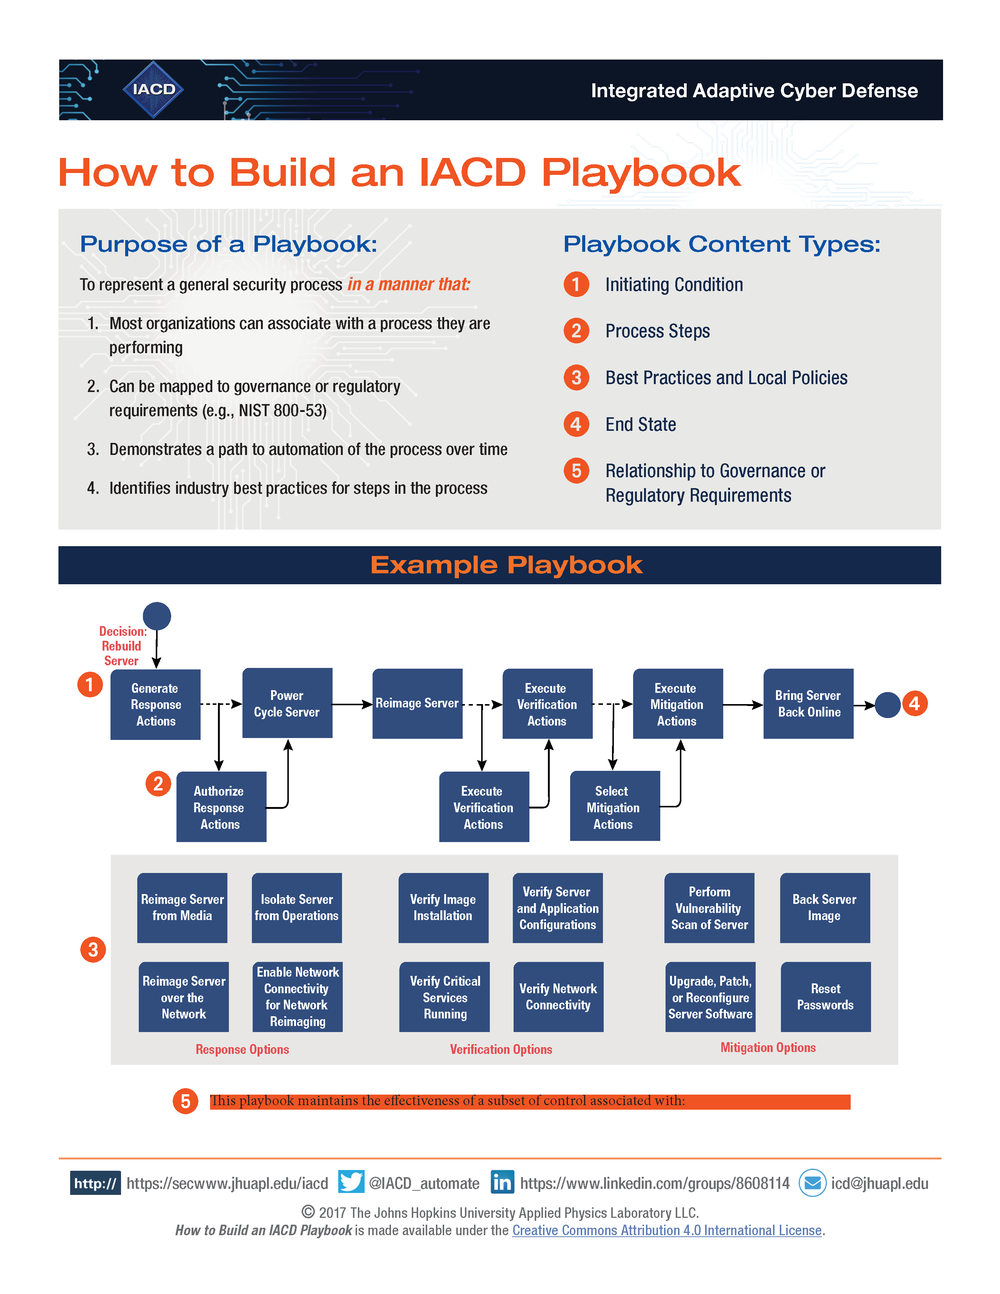 How to build an IACD Playbook